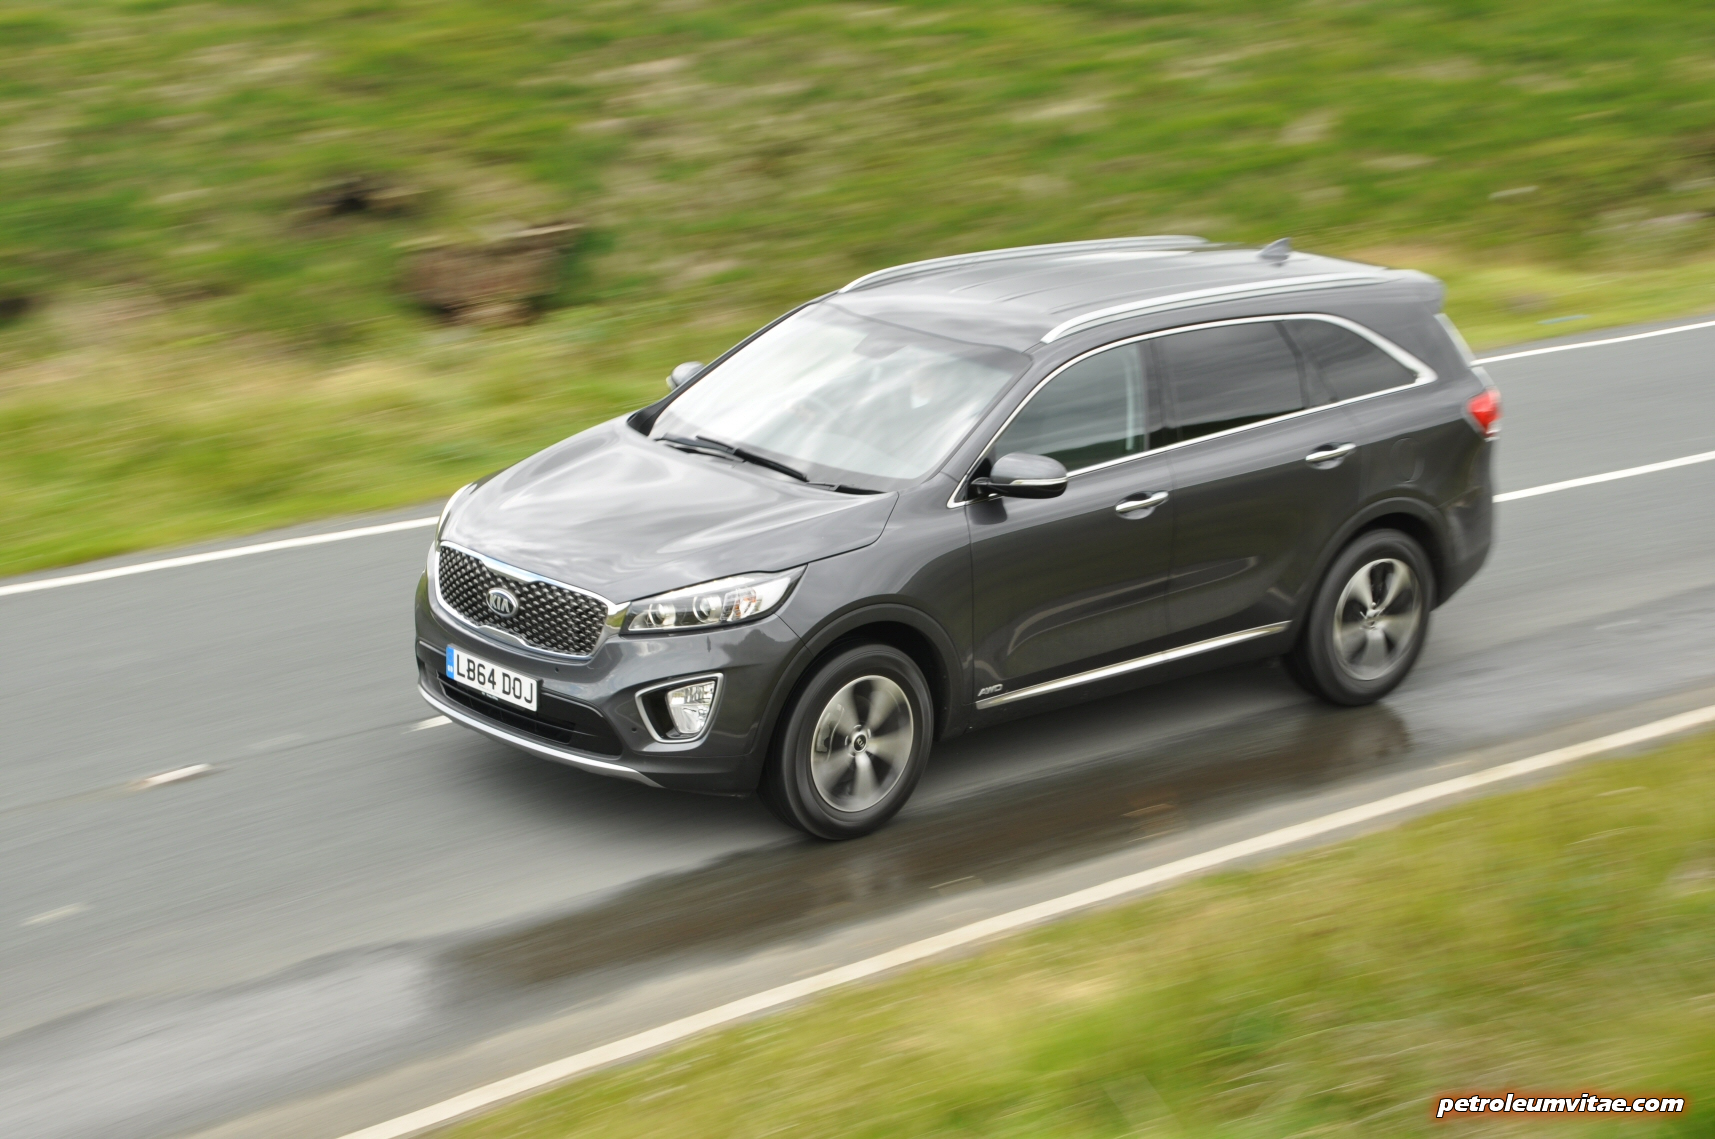 Kia Sorento: Driving with a trailer